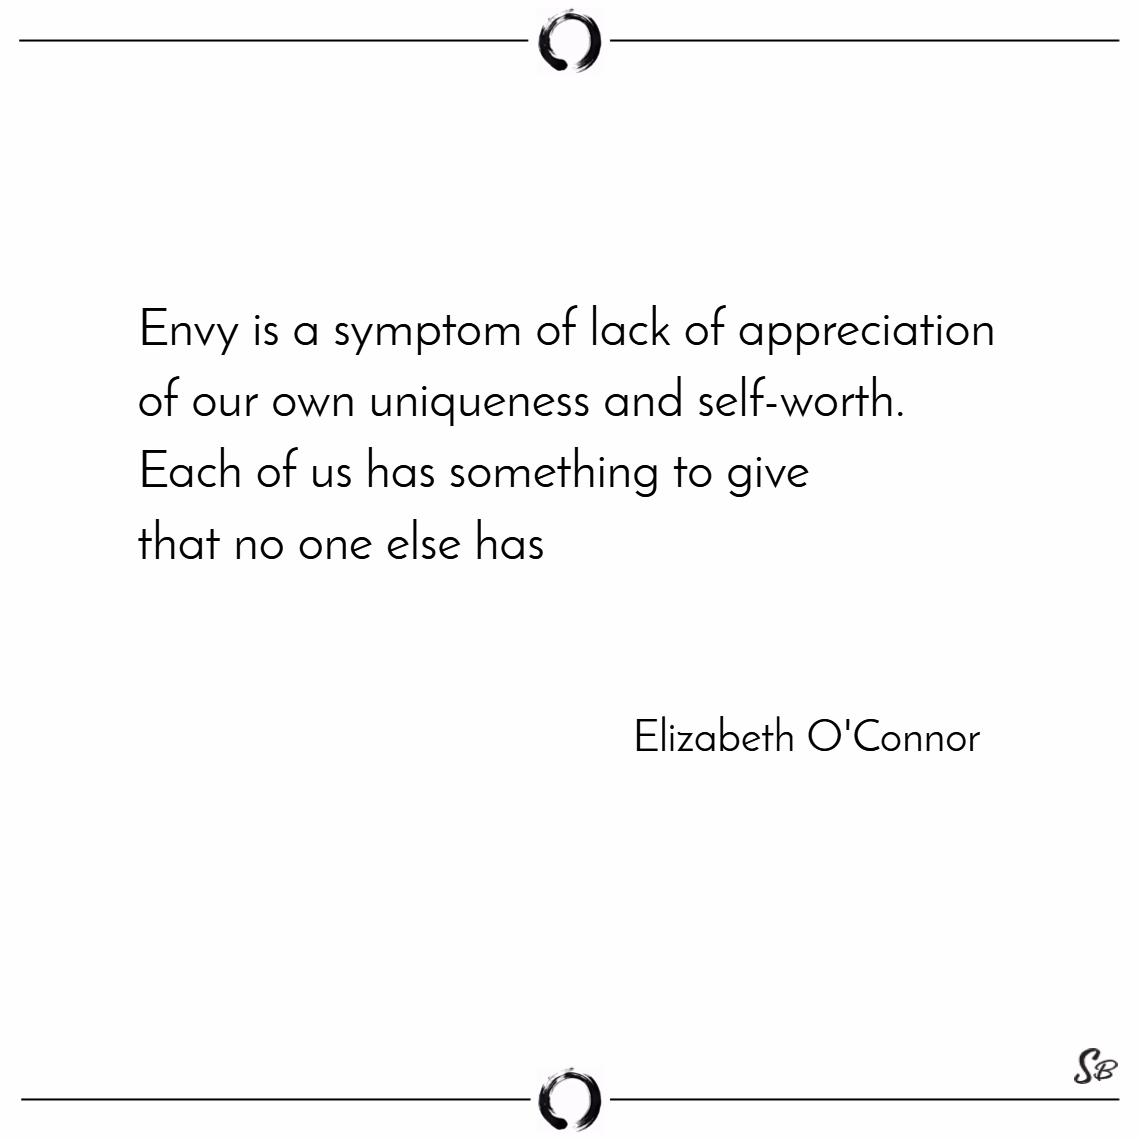 Envy is a symptom of lack of appreciation of our own uniqueness and self worth. each of us has something to give that no one else has. – elizabeth o'connor